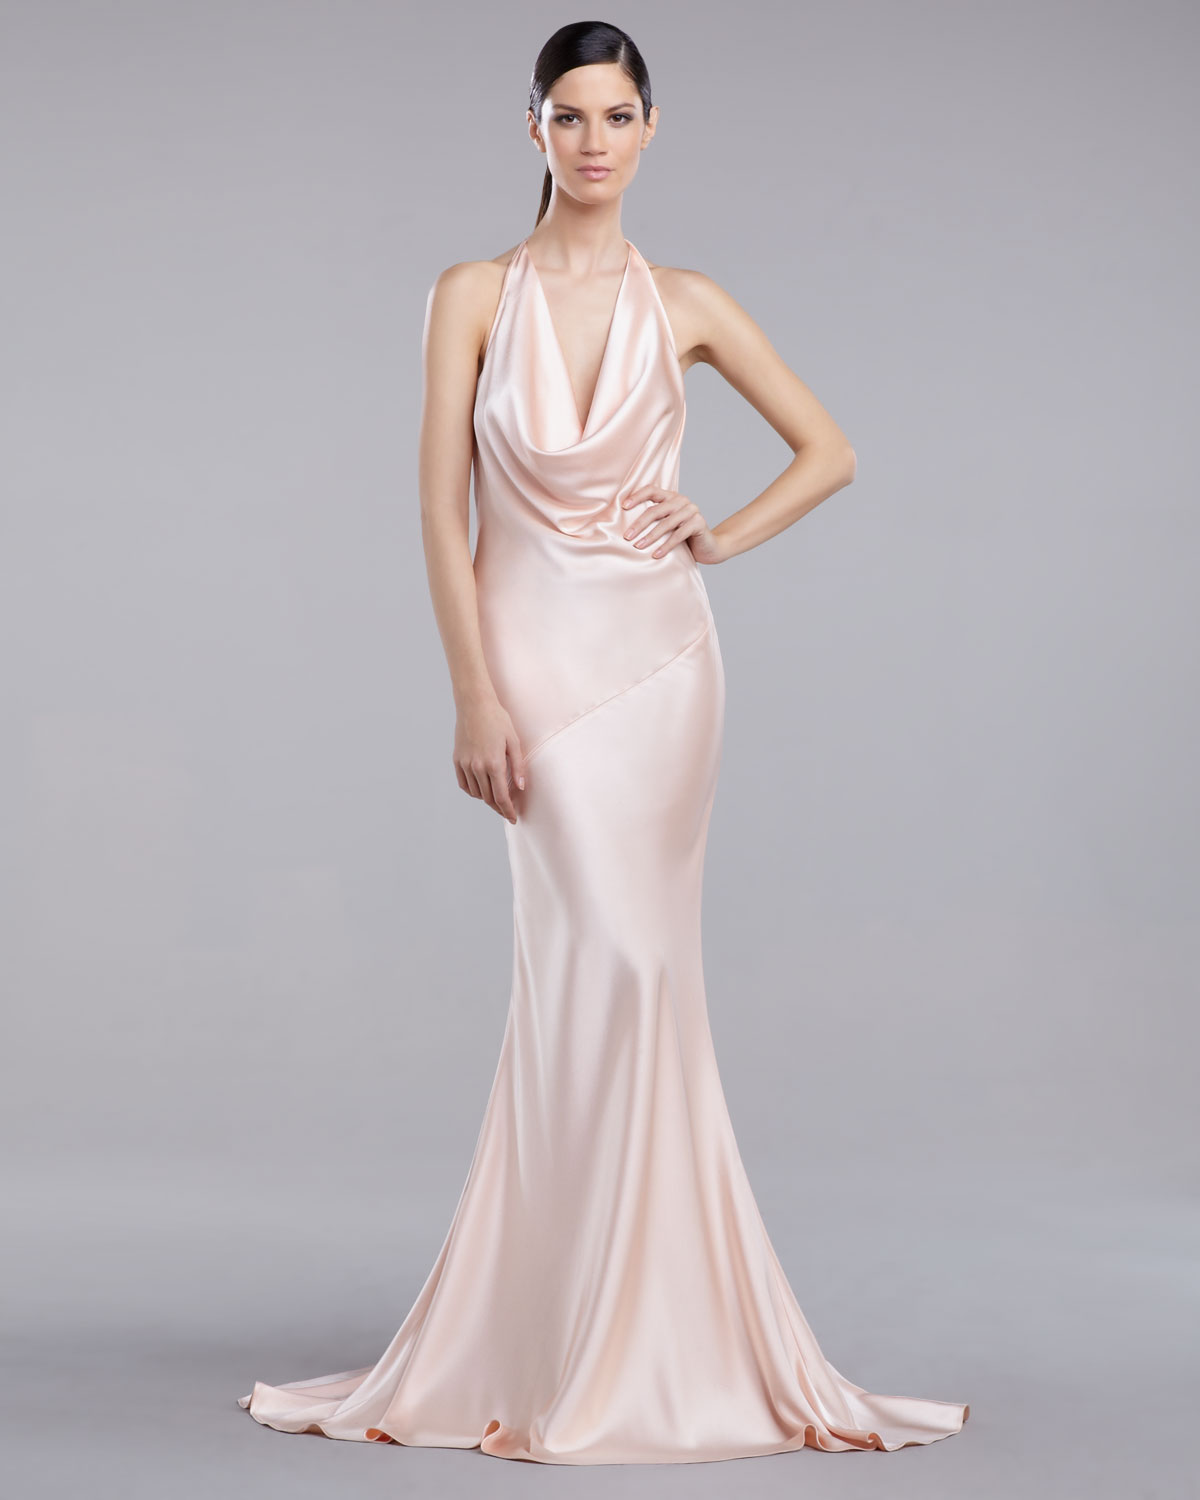 St john liquid satin bias cut gown in pink lyst gallery ombrellifo Gallery